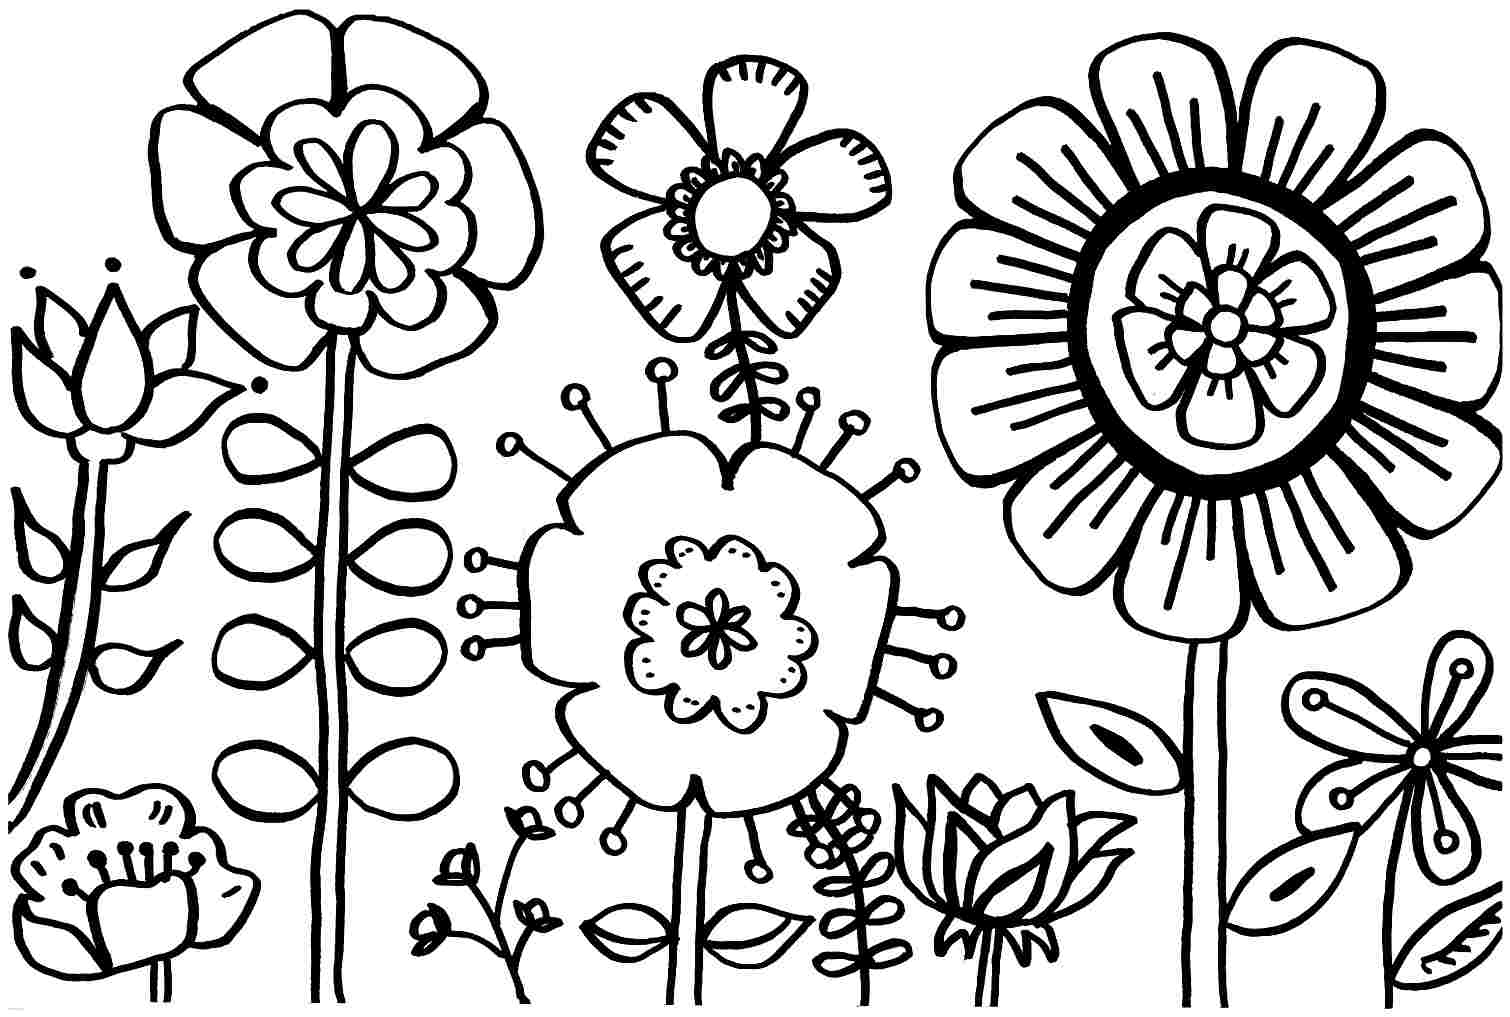 spring coloring pages to print - spring coloring page